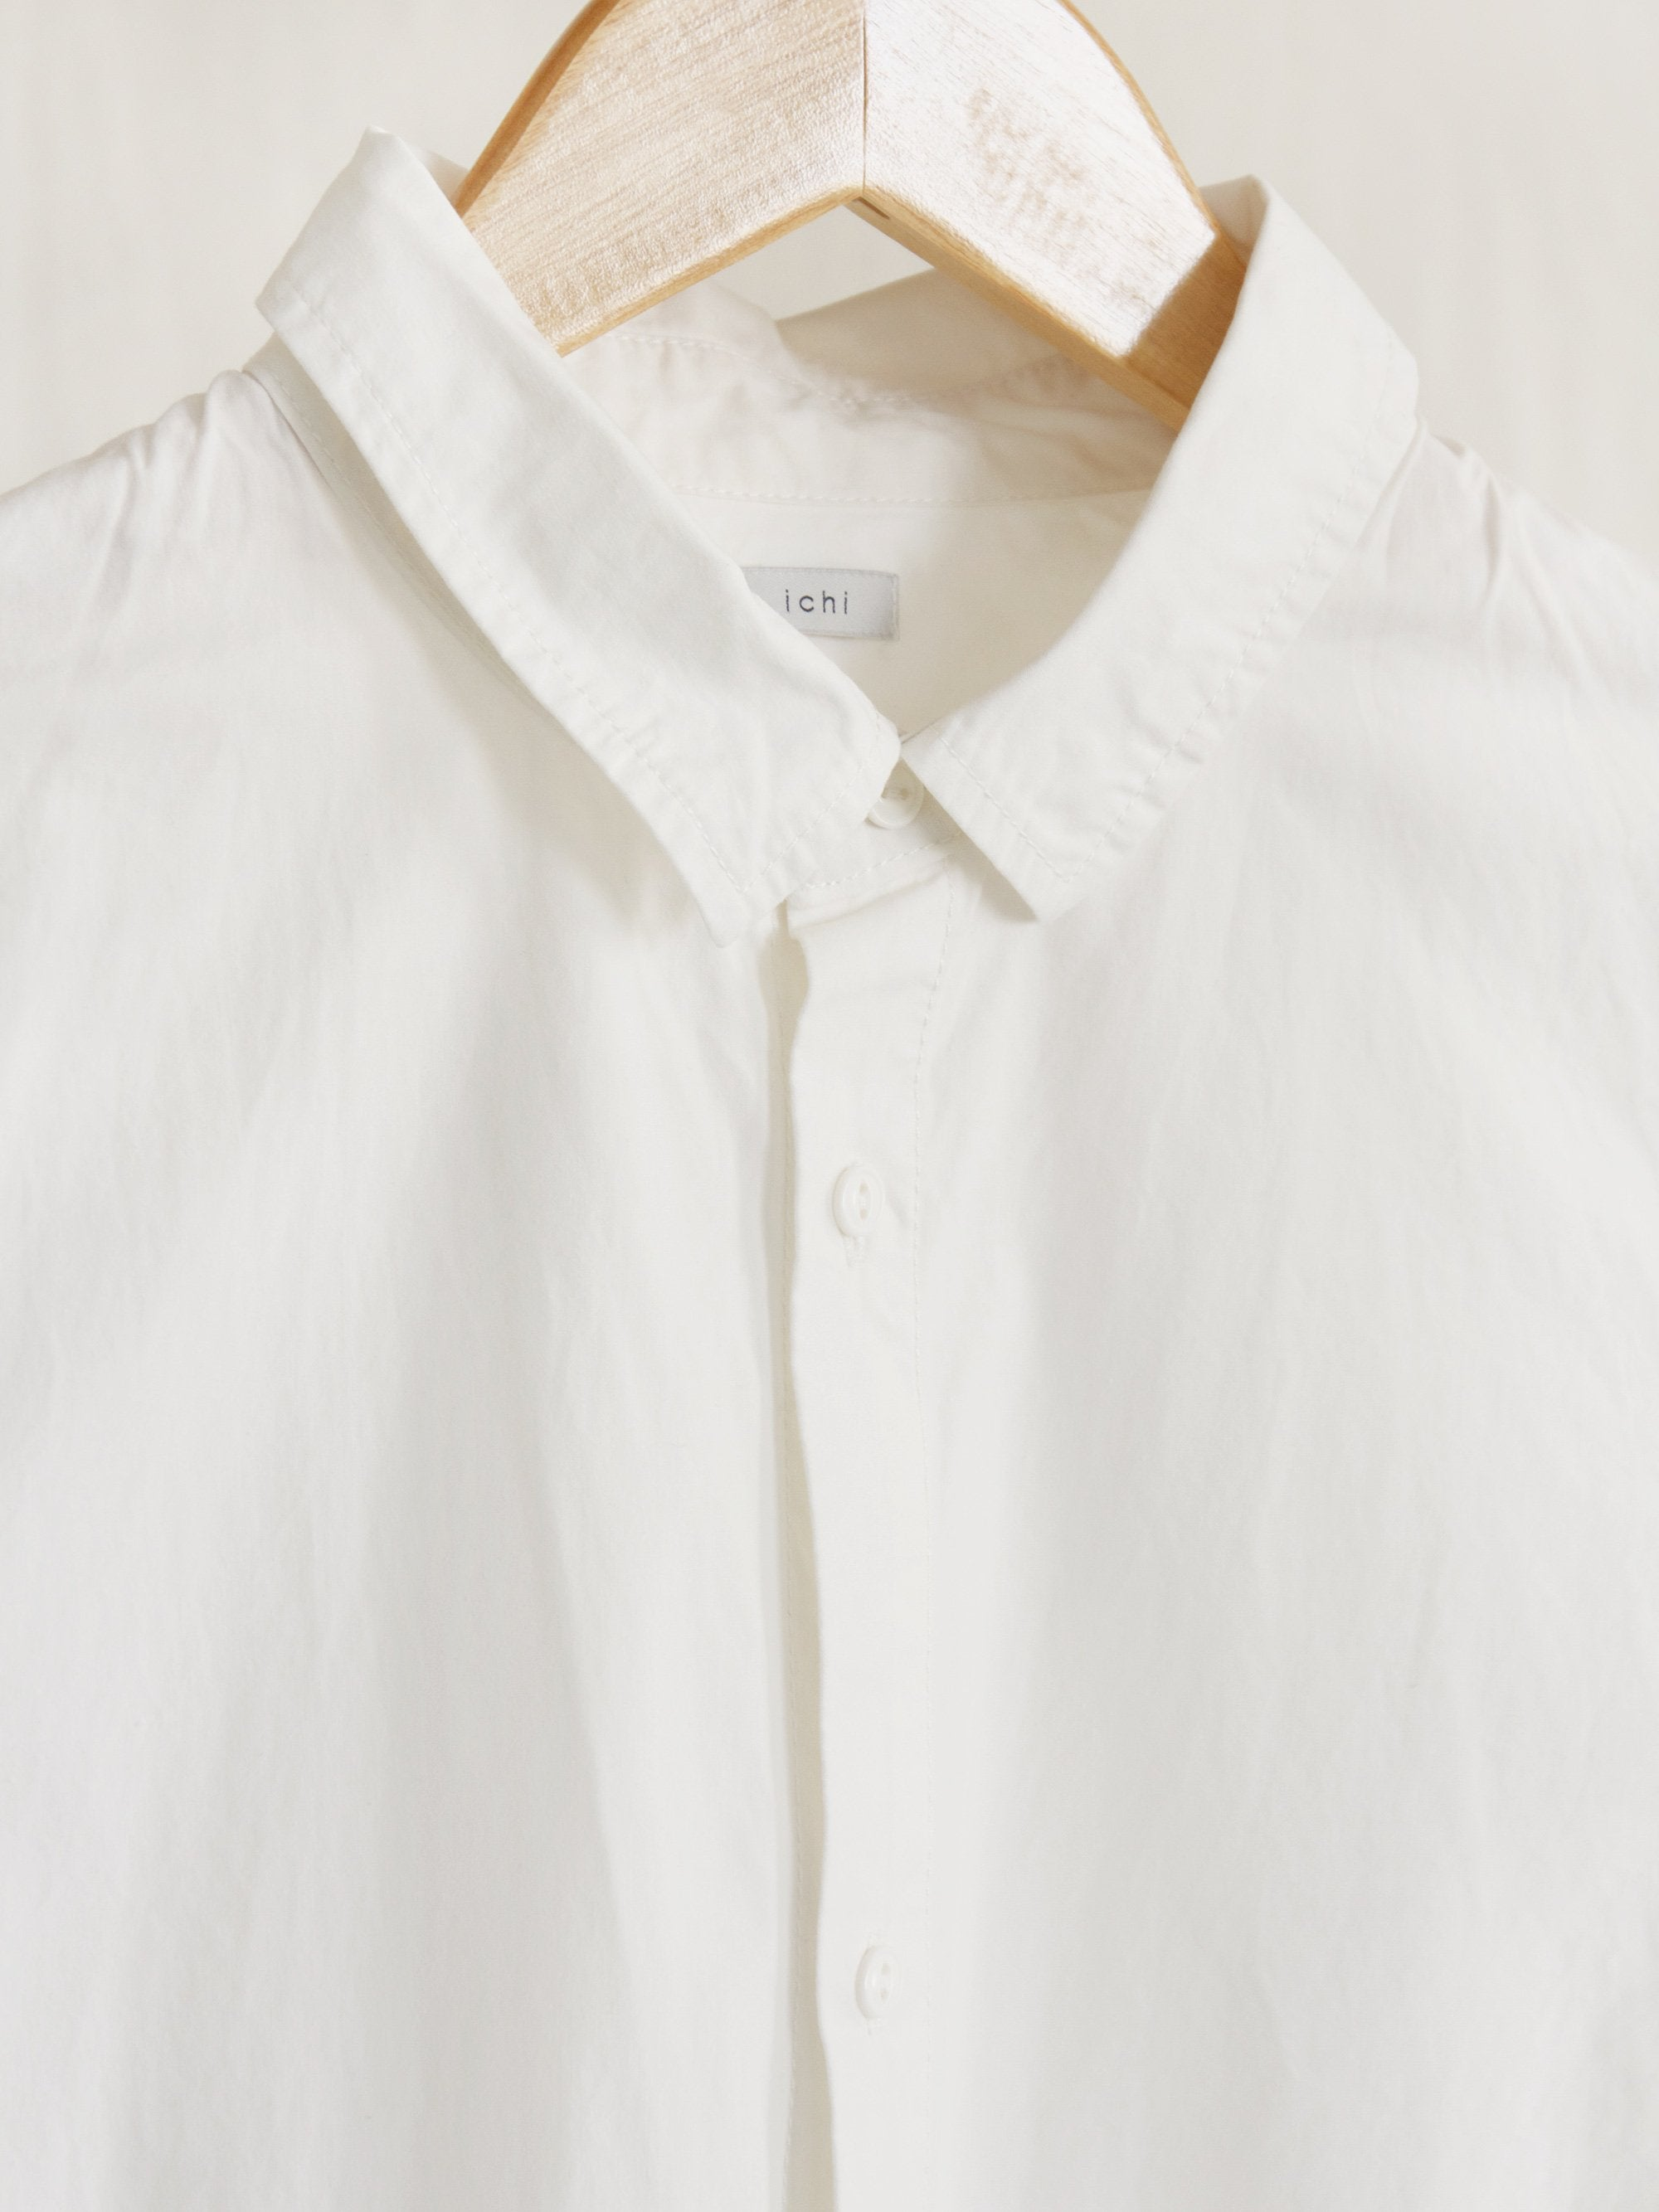 Namu Shop - Ichi Antiquites Shirt Dress - White